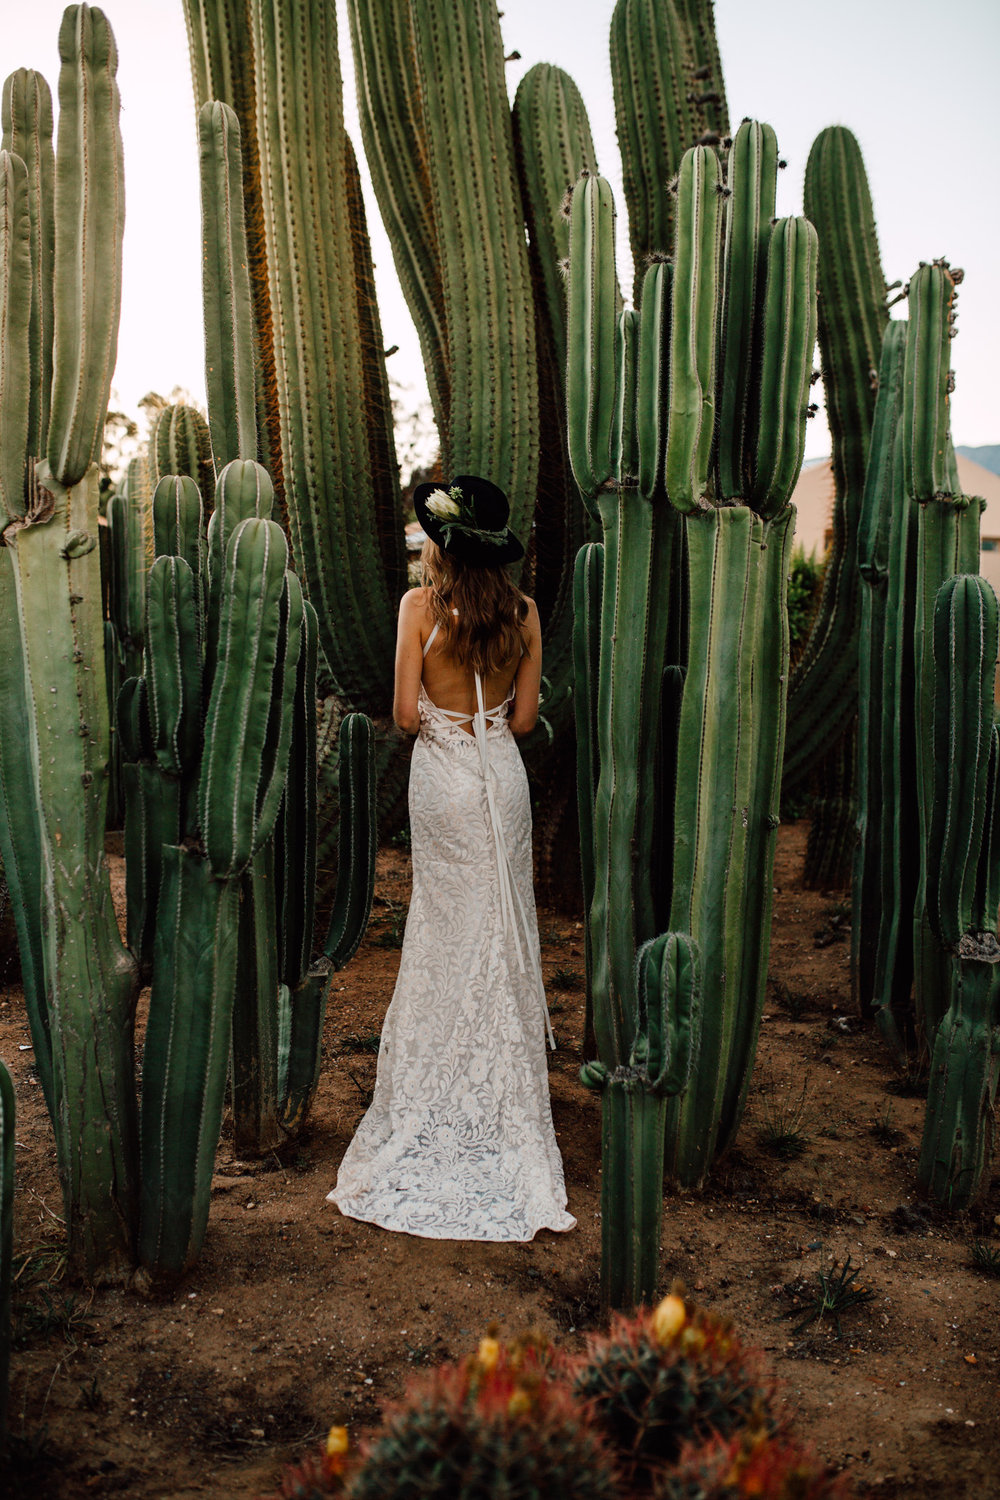 Cape-Town-Pia-Anna-Christian-Wedding-Photography-South-Africa-Bride-Cactus-31.jpg